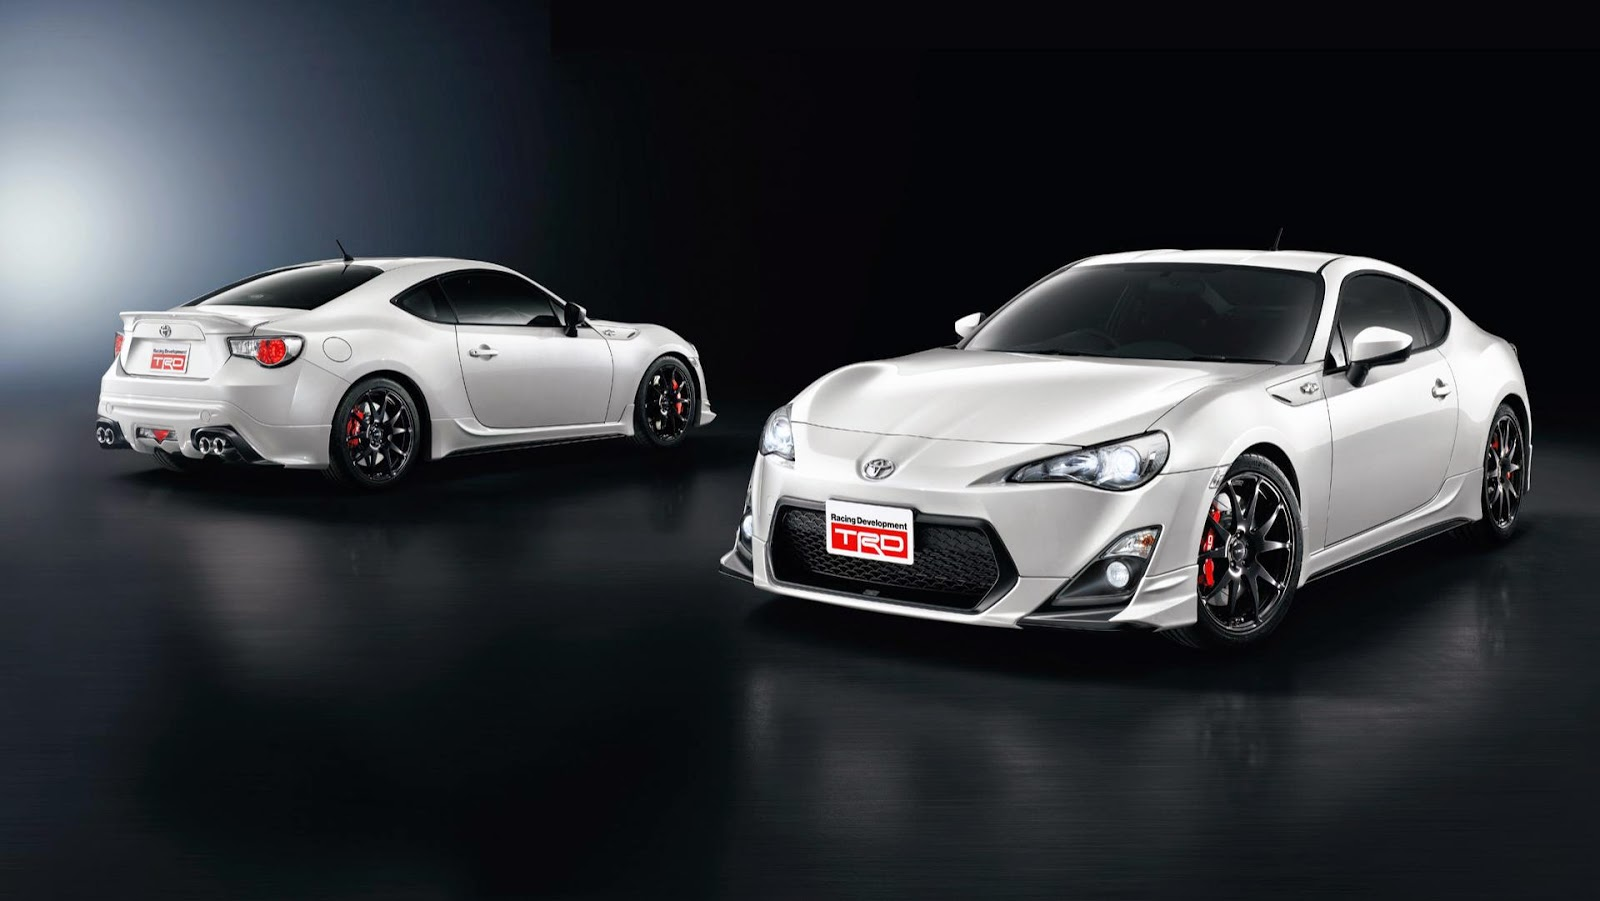 Upcoming Toyota Cars Saudi Arabia 86 2015 Subaru Brz Boxer Engine Diagram The Is A Series Of Grand Tourer Sports Coups Jointly Developed By And Solely Manufactured Latter It Features